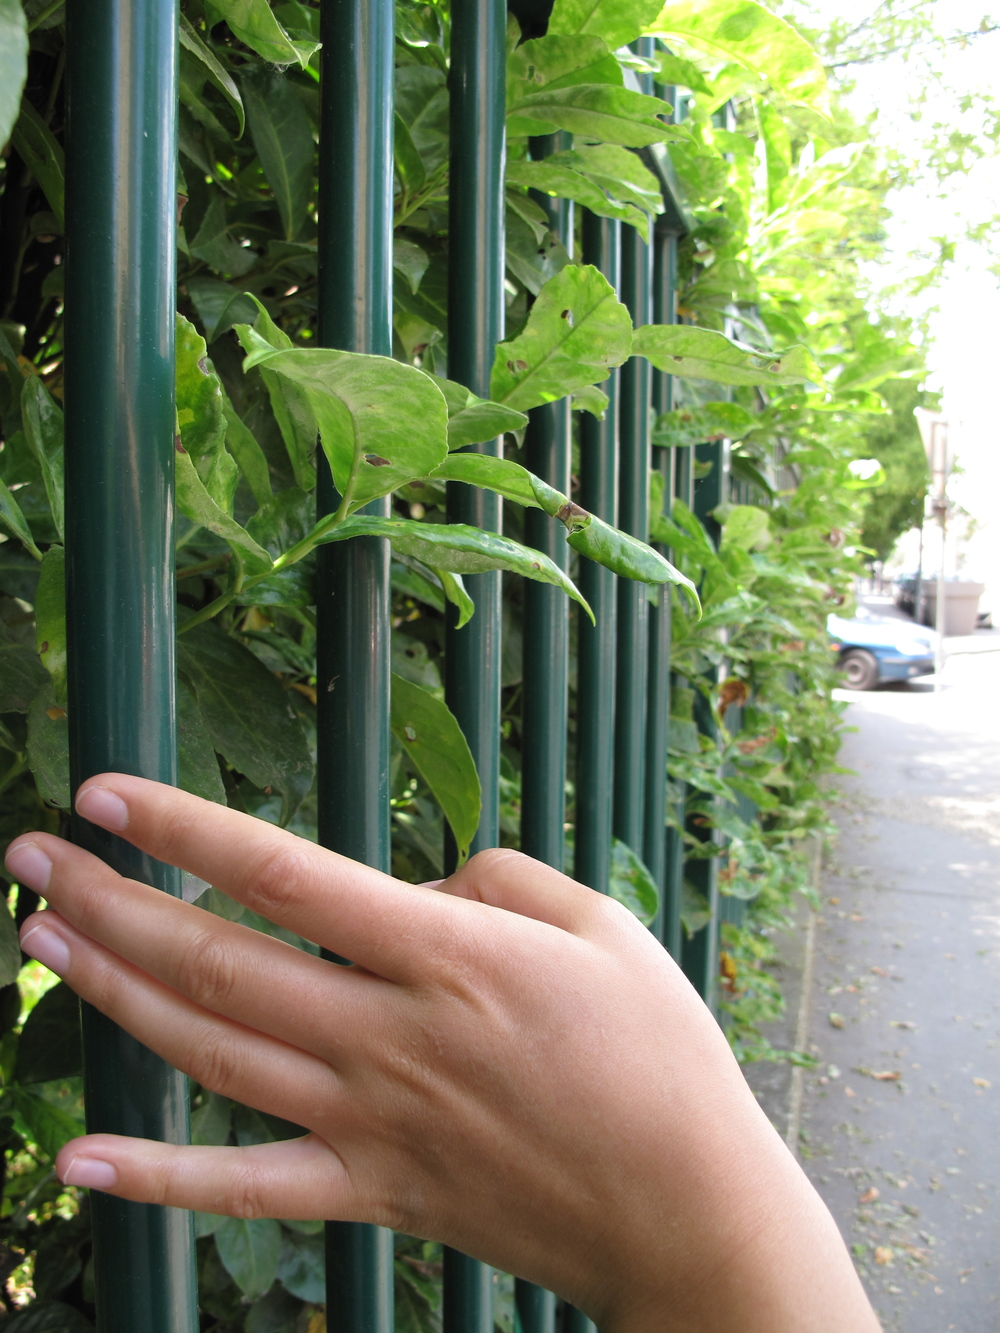 Raking my hand along the rungs of a fence.